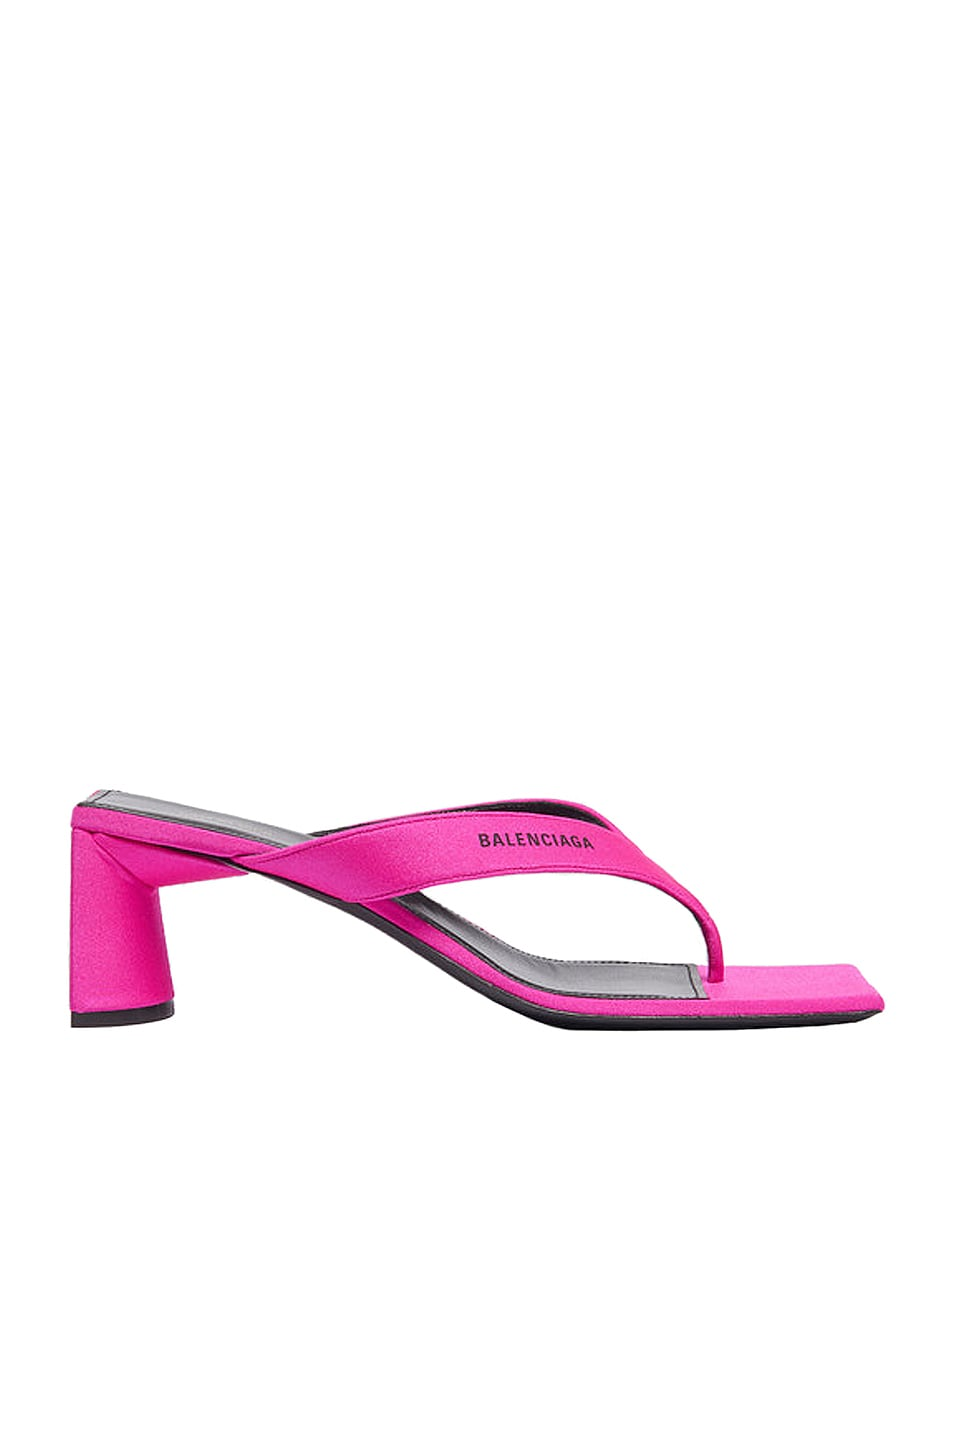 Image 1 of Balenciaga Logo Double Square Sandals in Lipstick Pink & Black